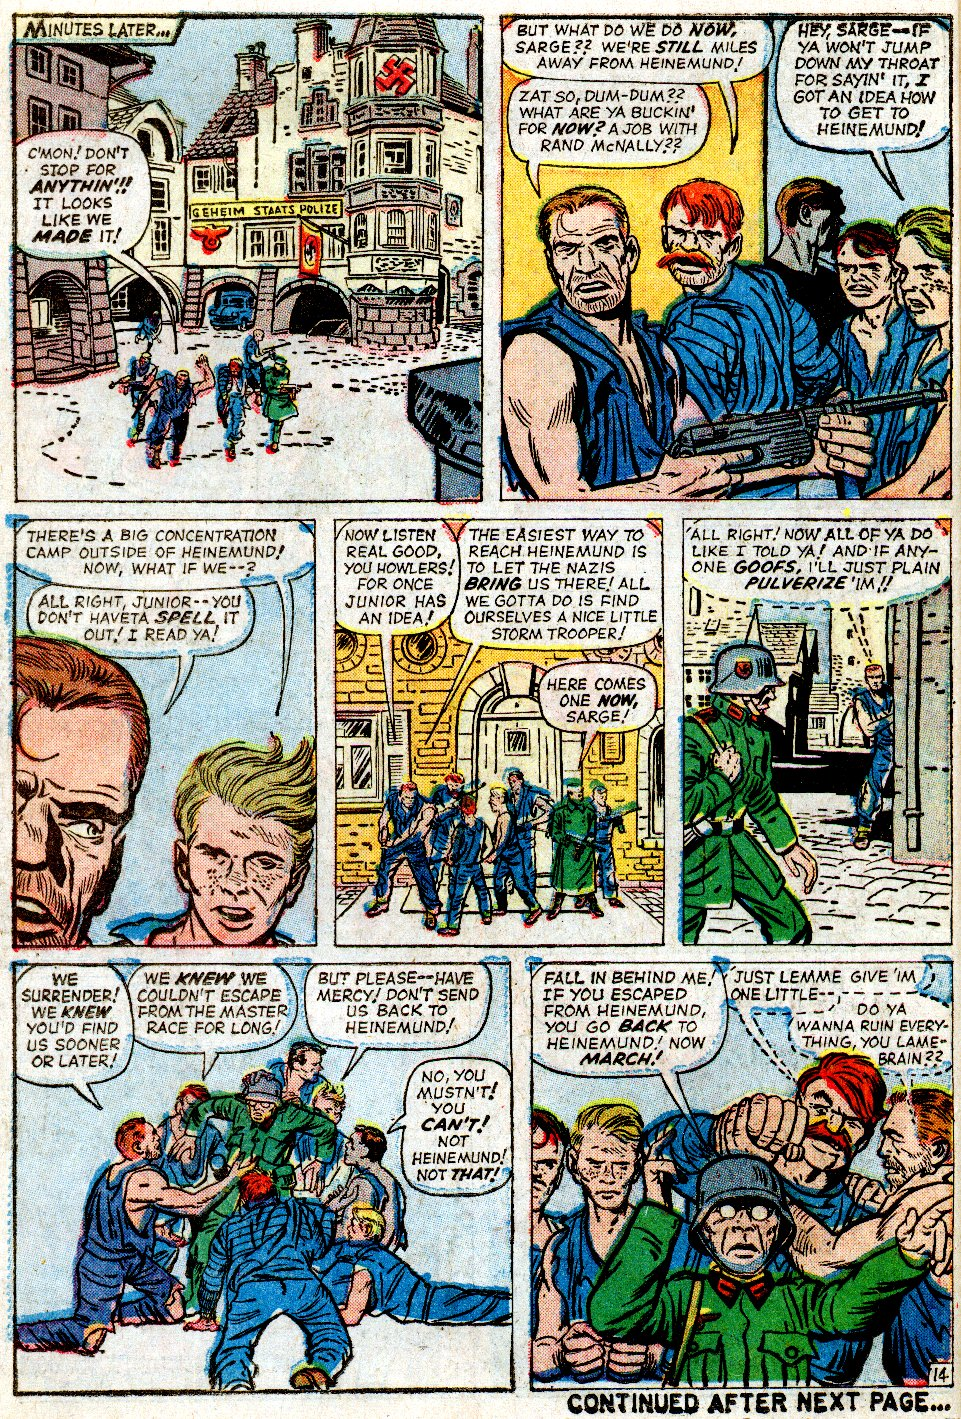 Read online Sgt. Fury comic -  Issue #2 - 18